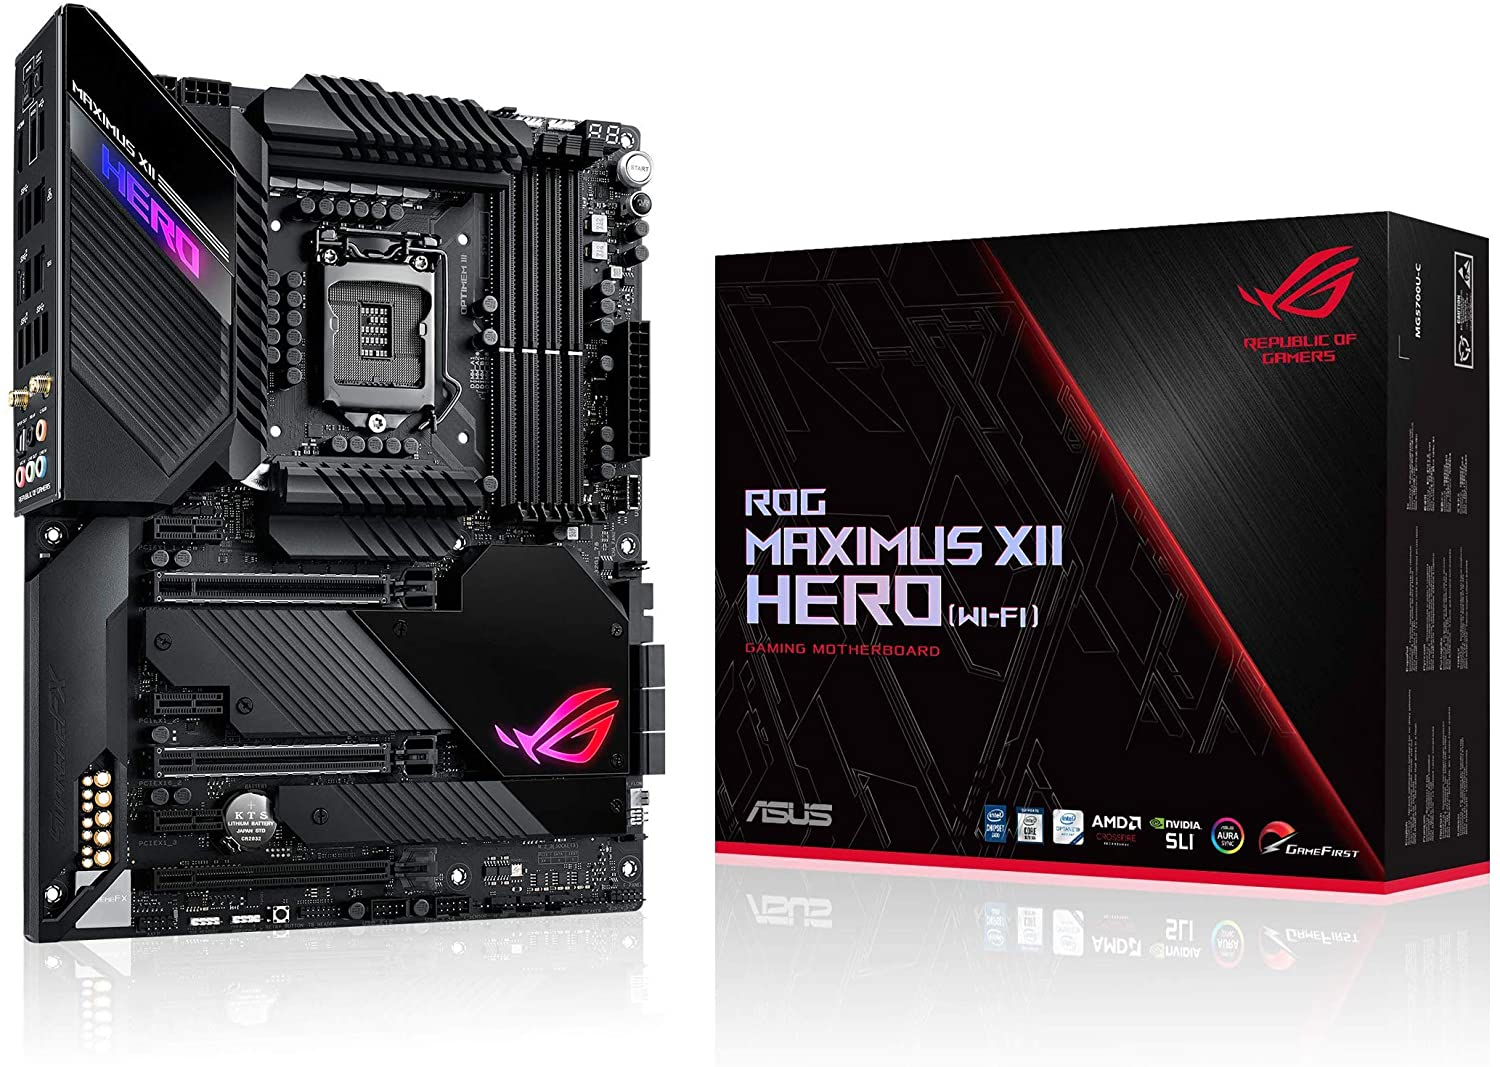 Mainboard ASUS Z490 ROG MAXIMUS XII HERO (WI-FI)